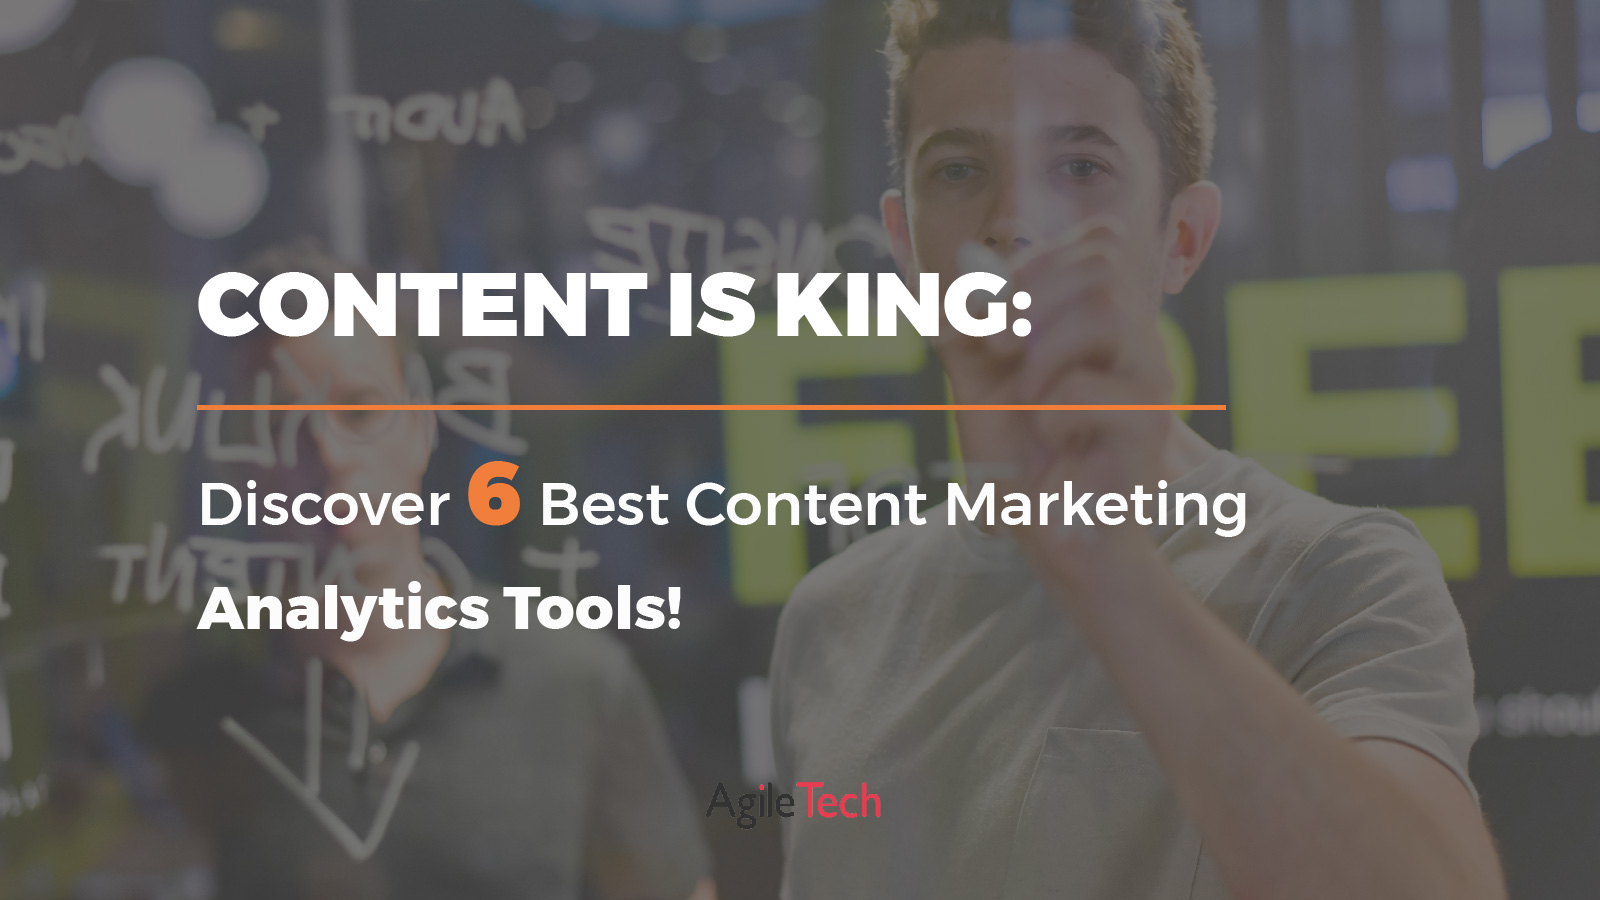 why content is important and 6 best content marketing analytics tools by agiletech